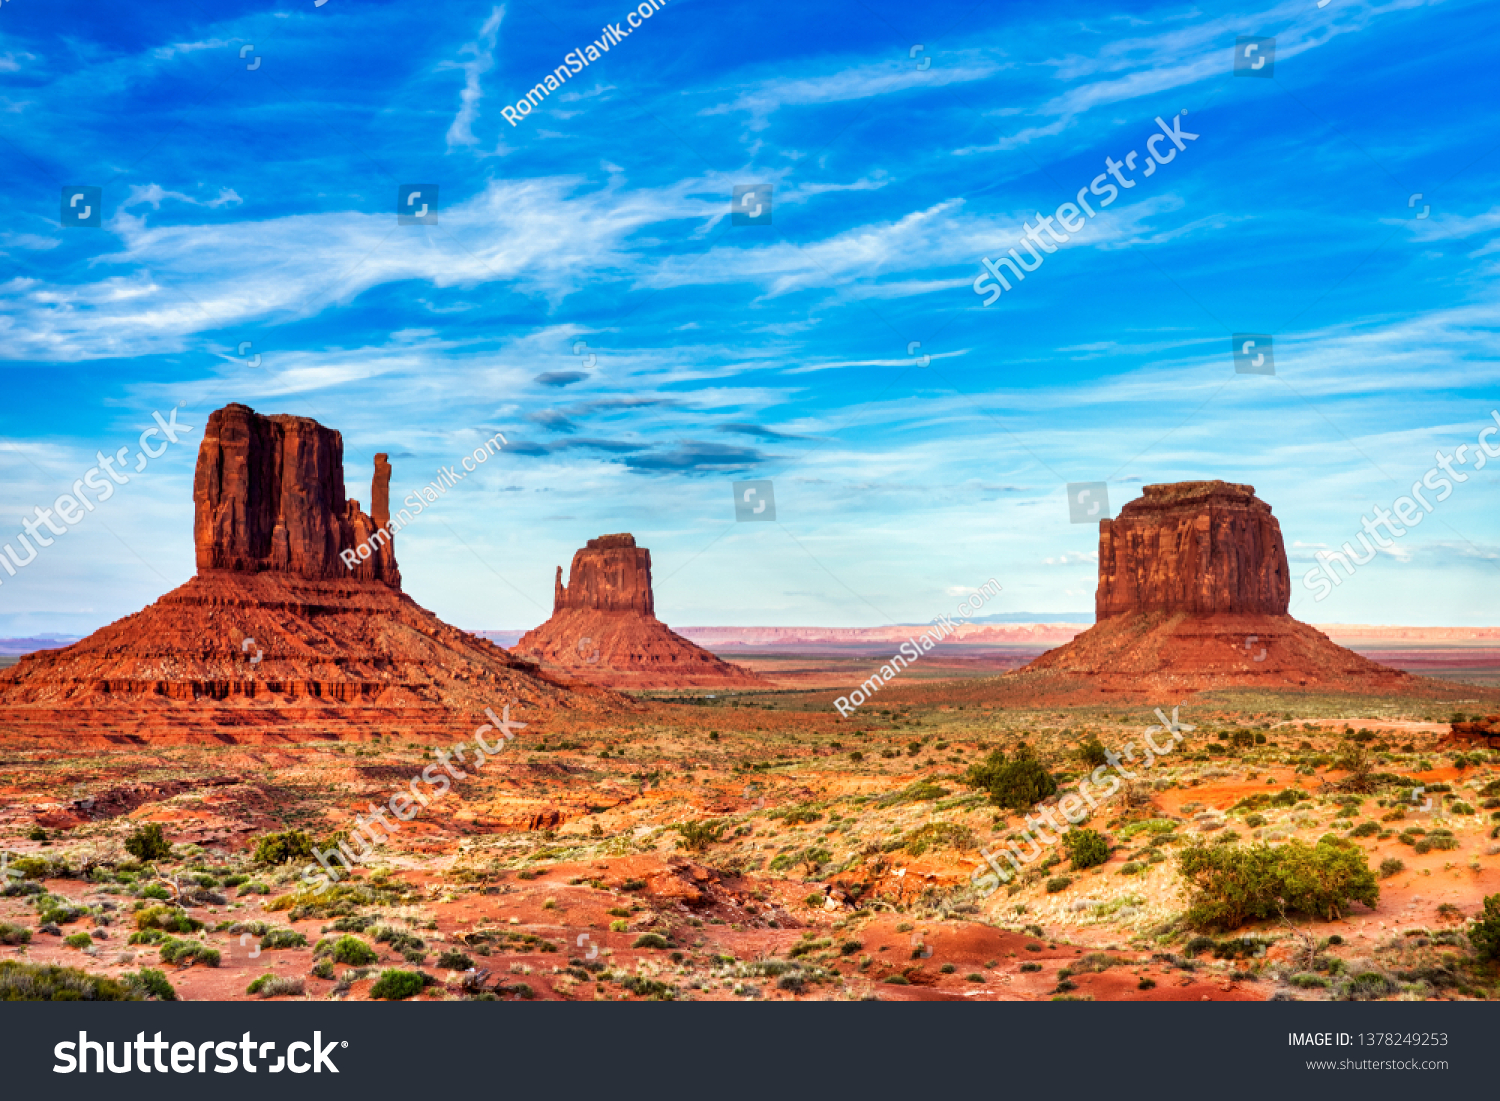 Monument Valley on the Border between Arizona and Utah, United States #1378249253